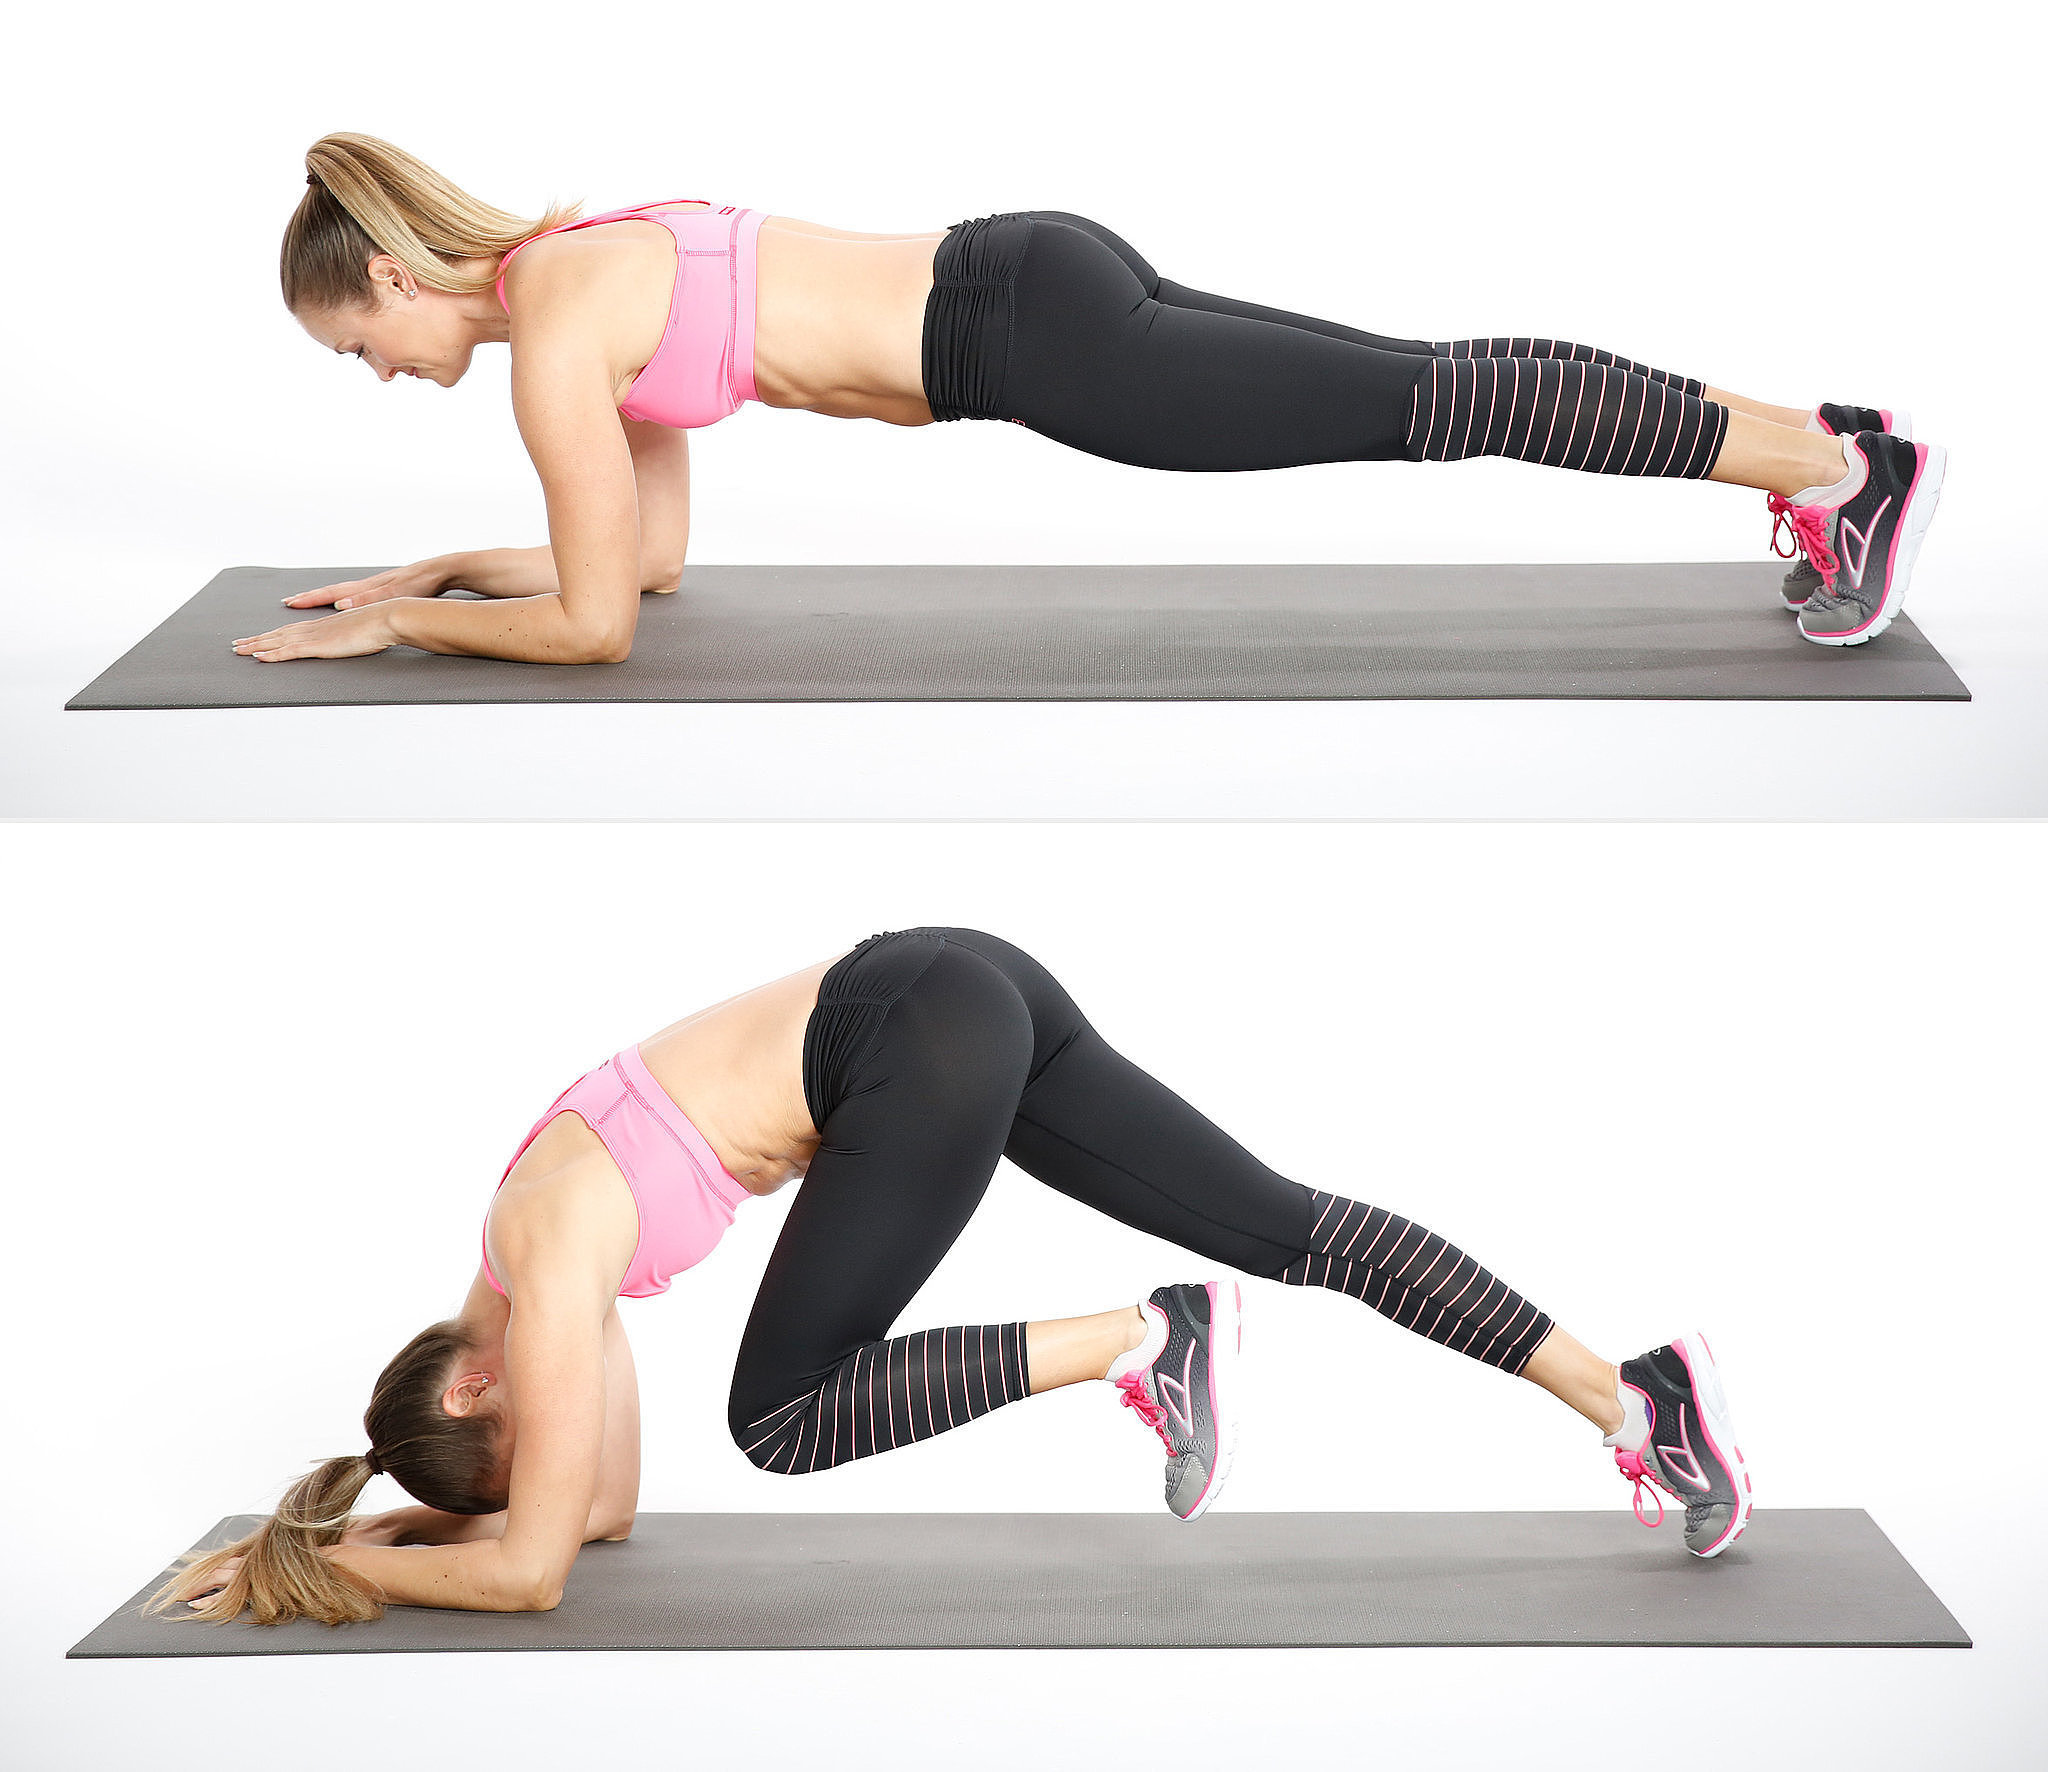 Work Your Abs and Your Shoulders in This Killer Plank Variation